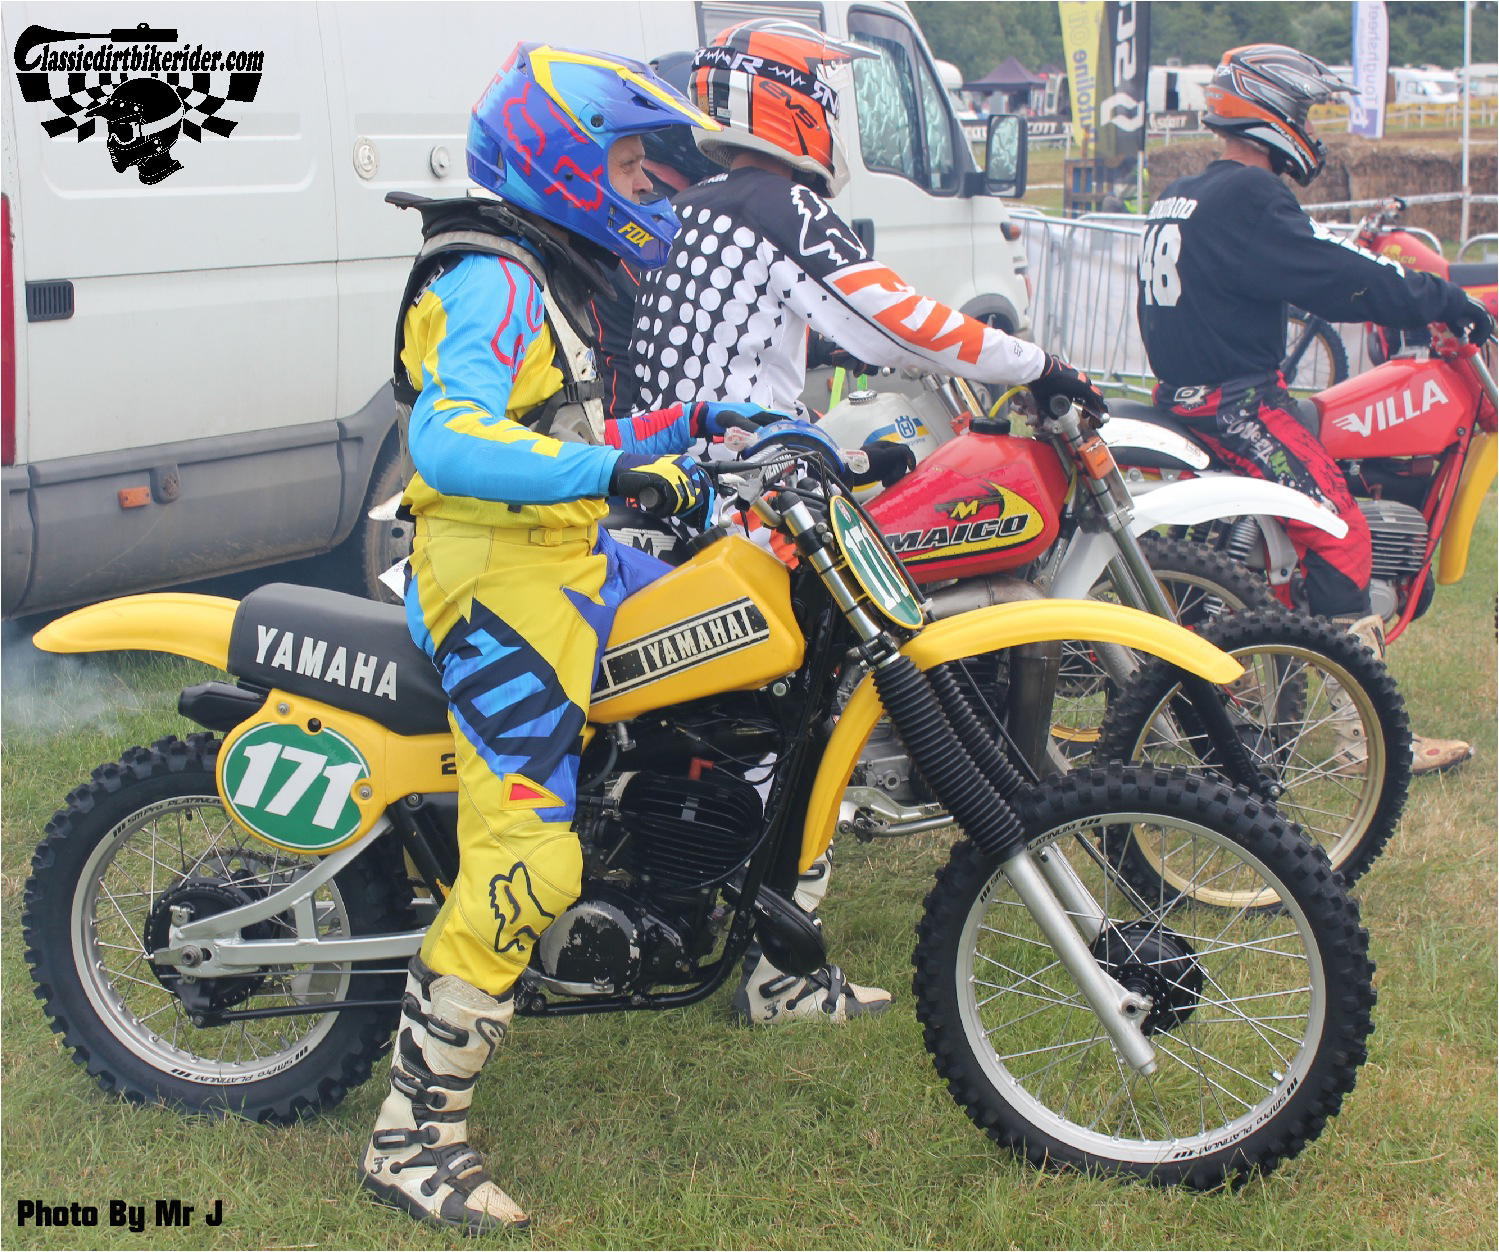 king of the castle 2015 photos Farleigh Castle twinshock motocross classicdirtbikerider.com 10